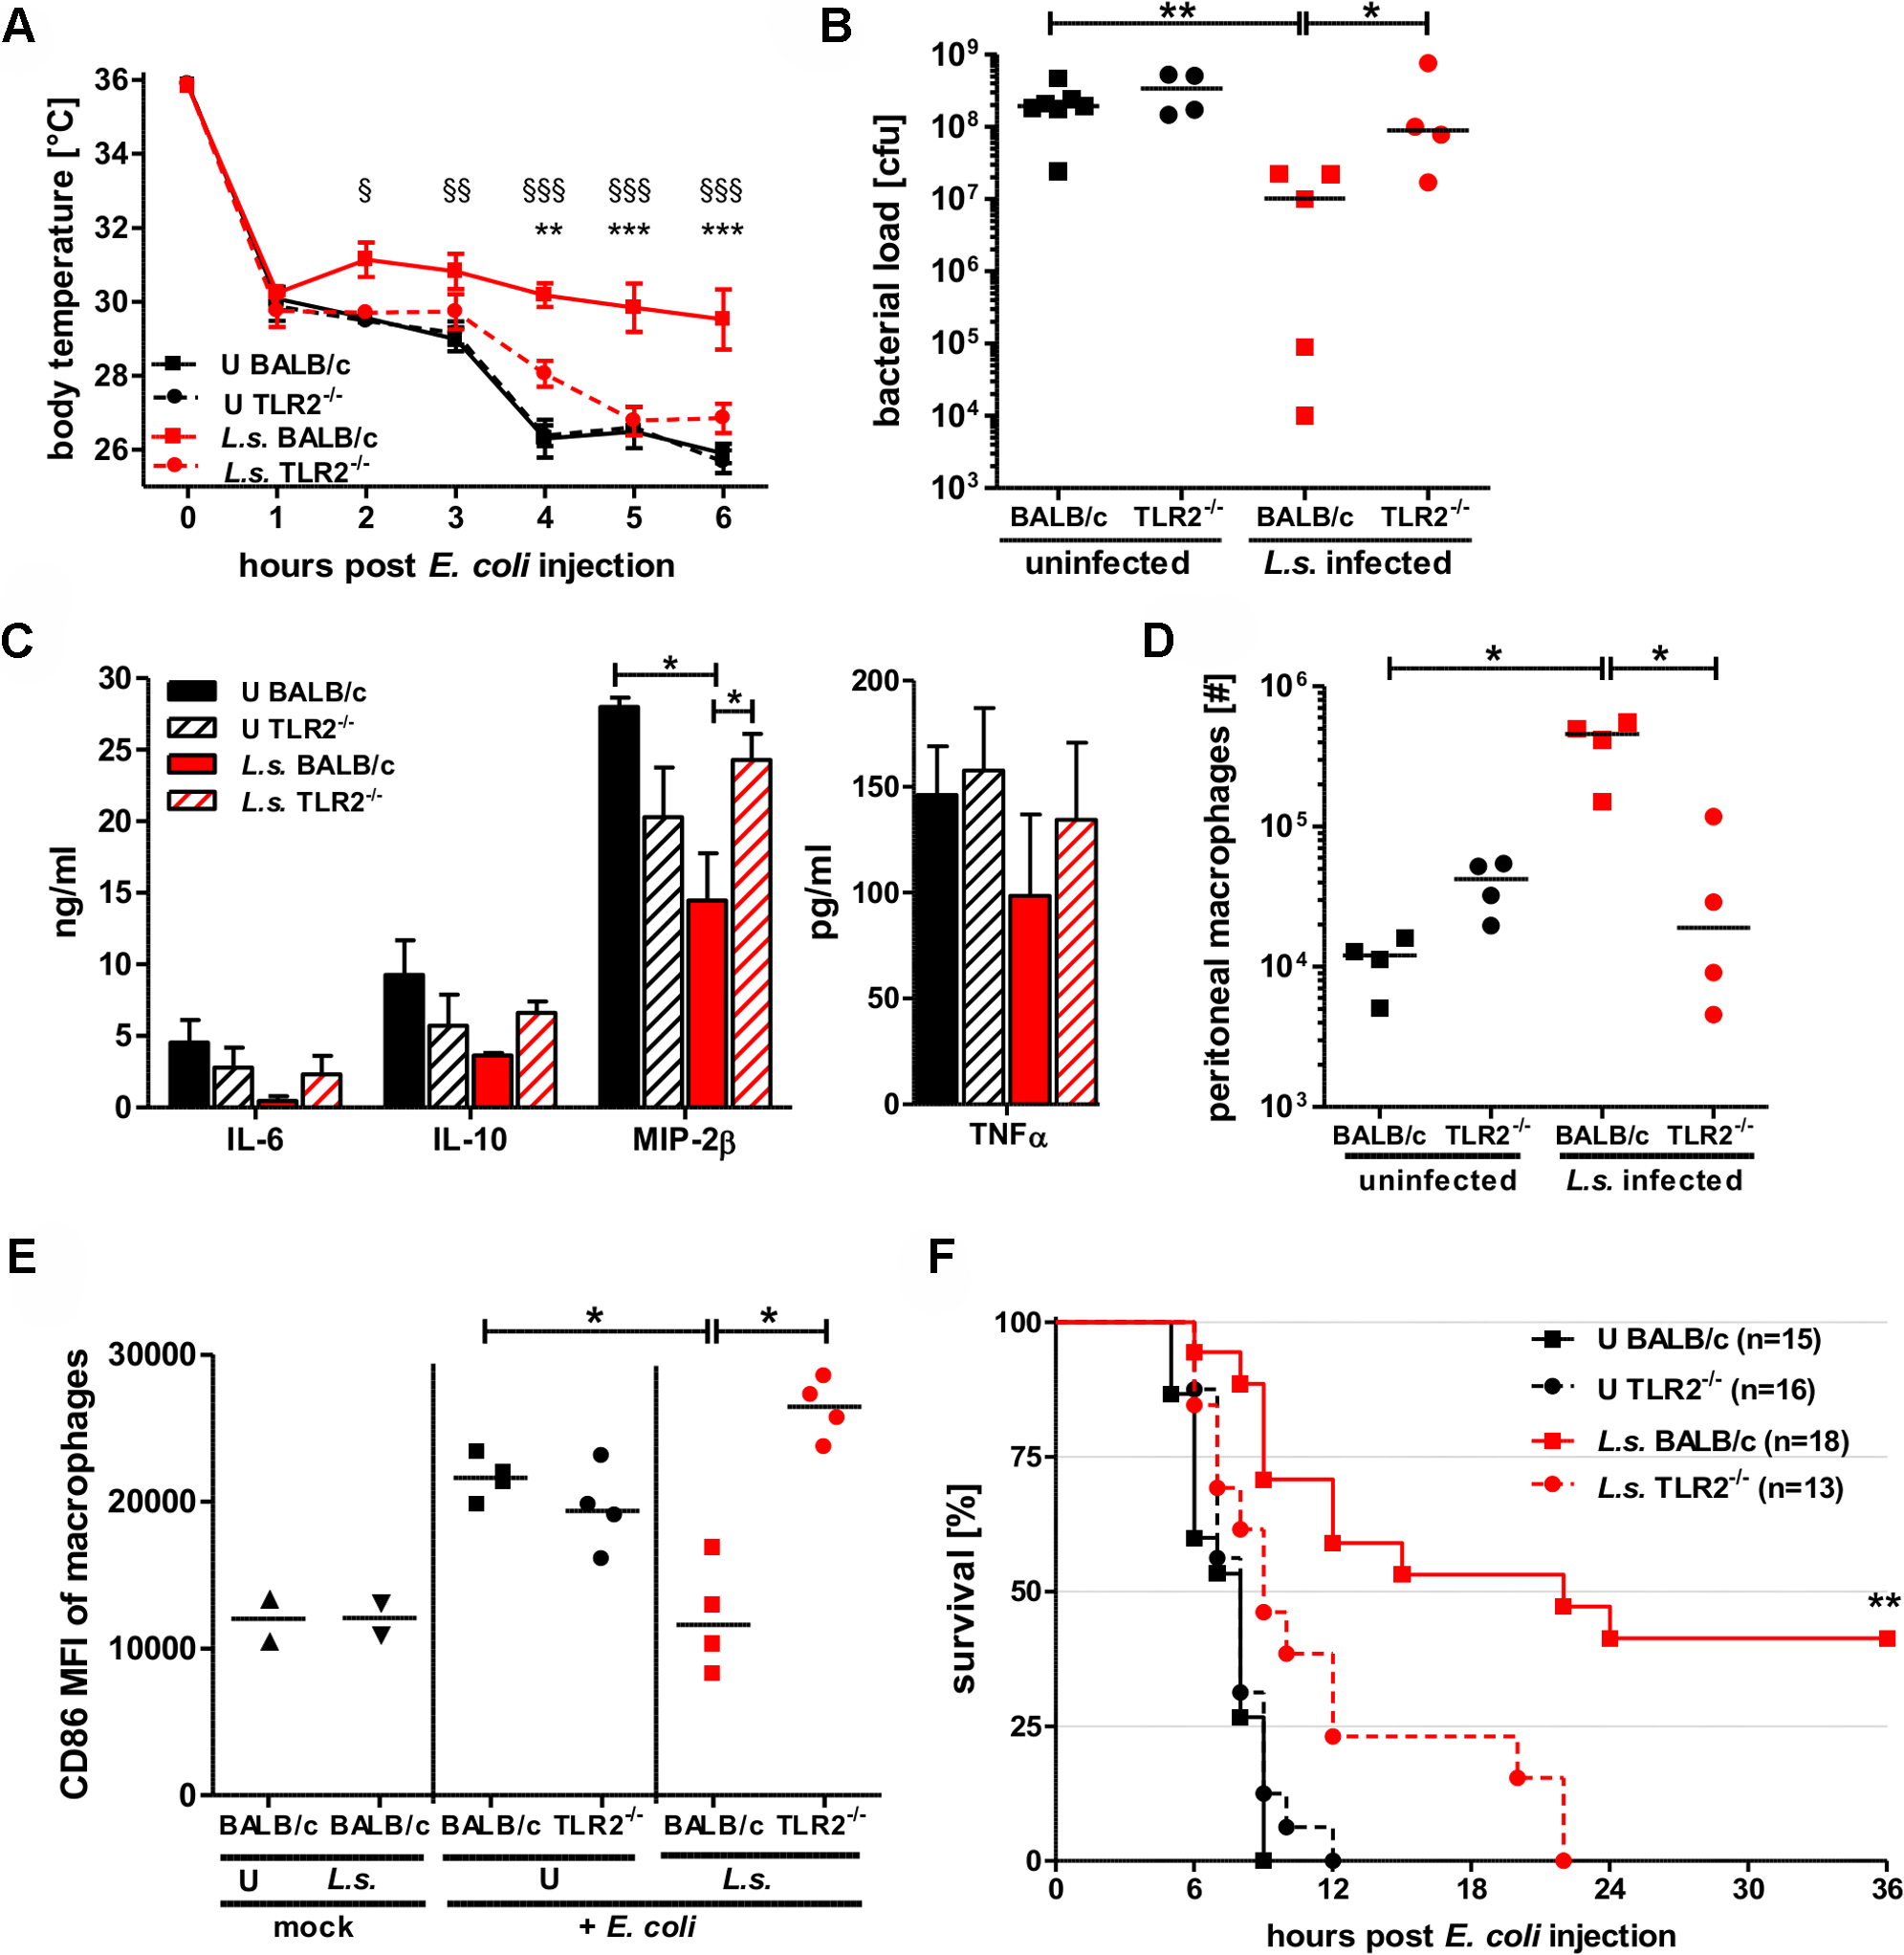 TLR2 is required for mediating protection against <i>E. coli</i>-induced sepsis in filarial-infected mice.